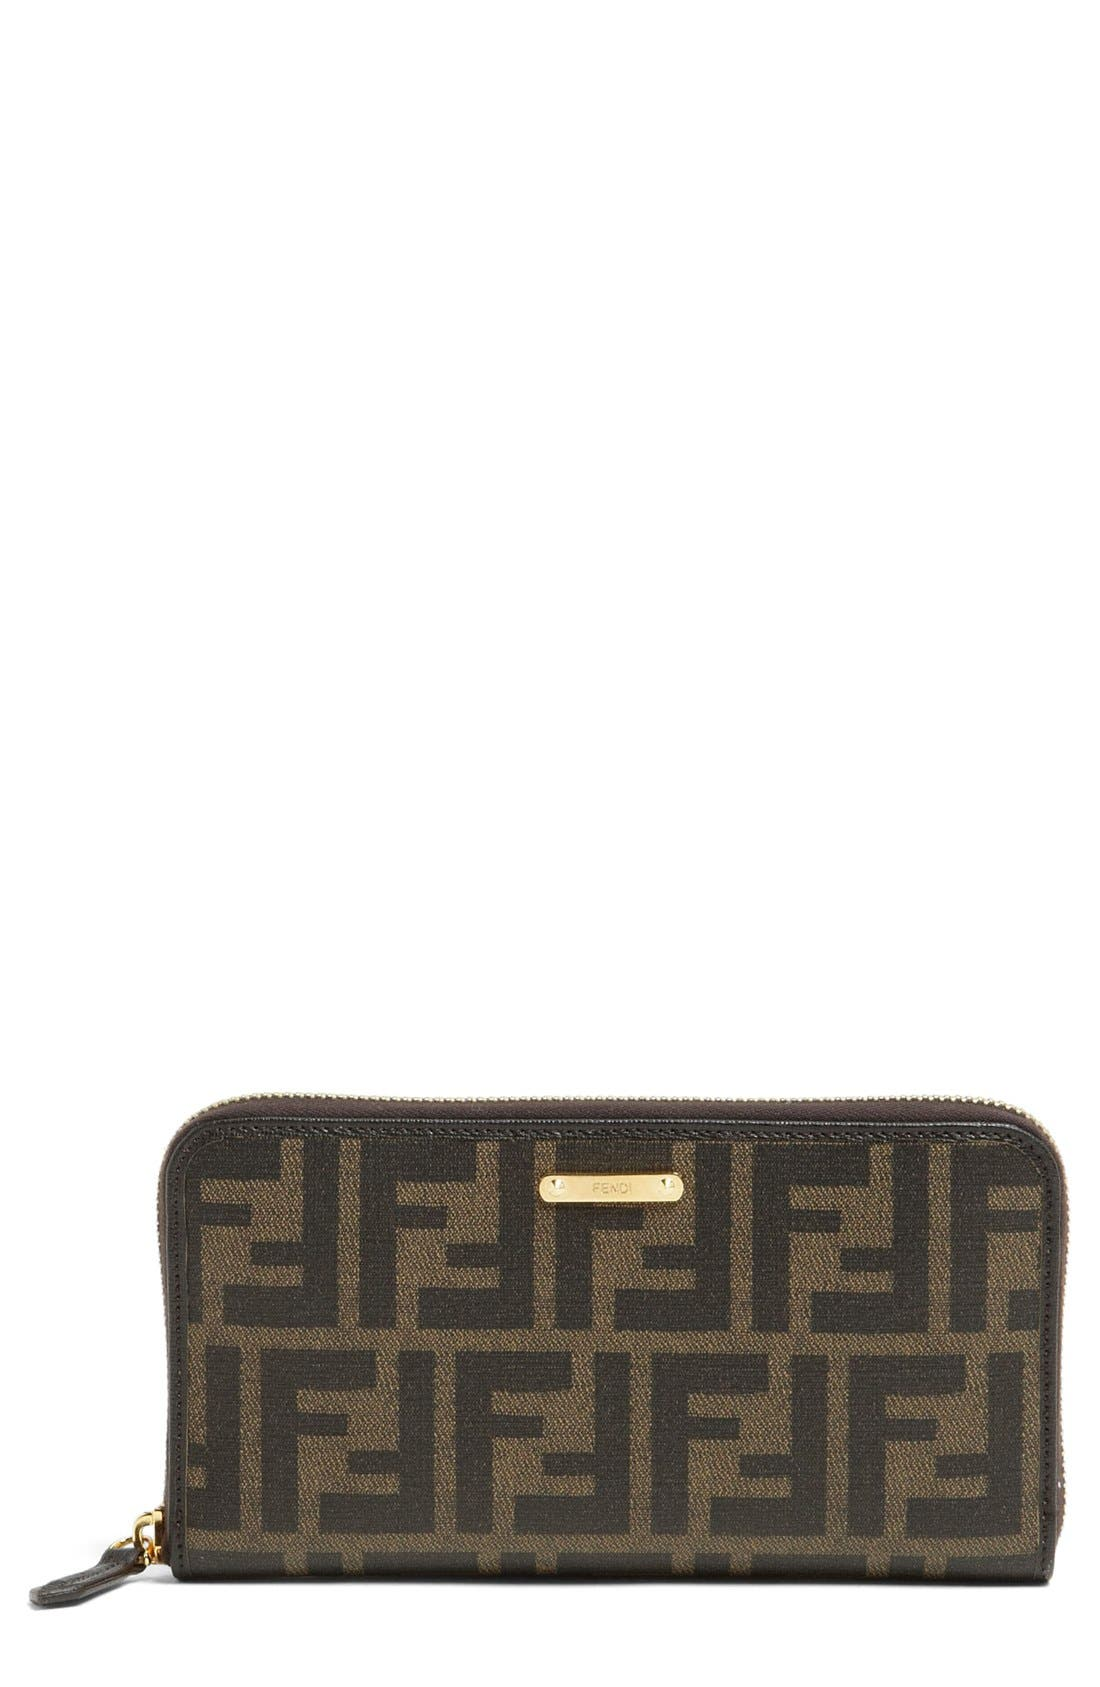 Alternate Image 1 Selected - Fendi 'Zucca' Wallet